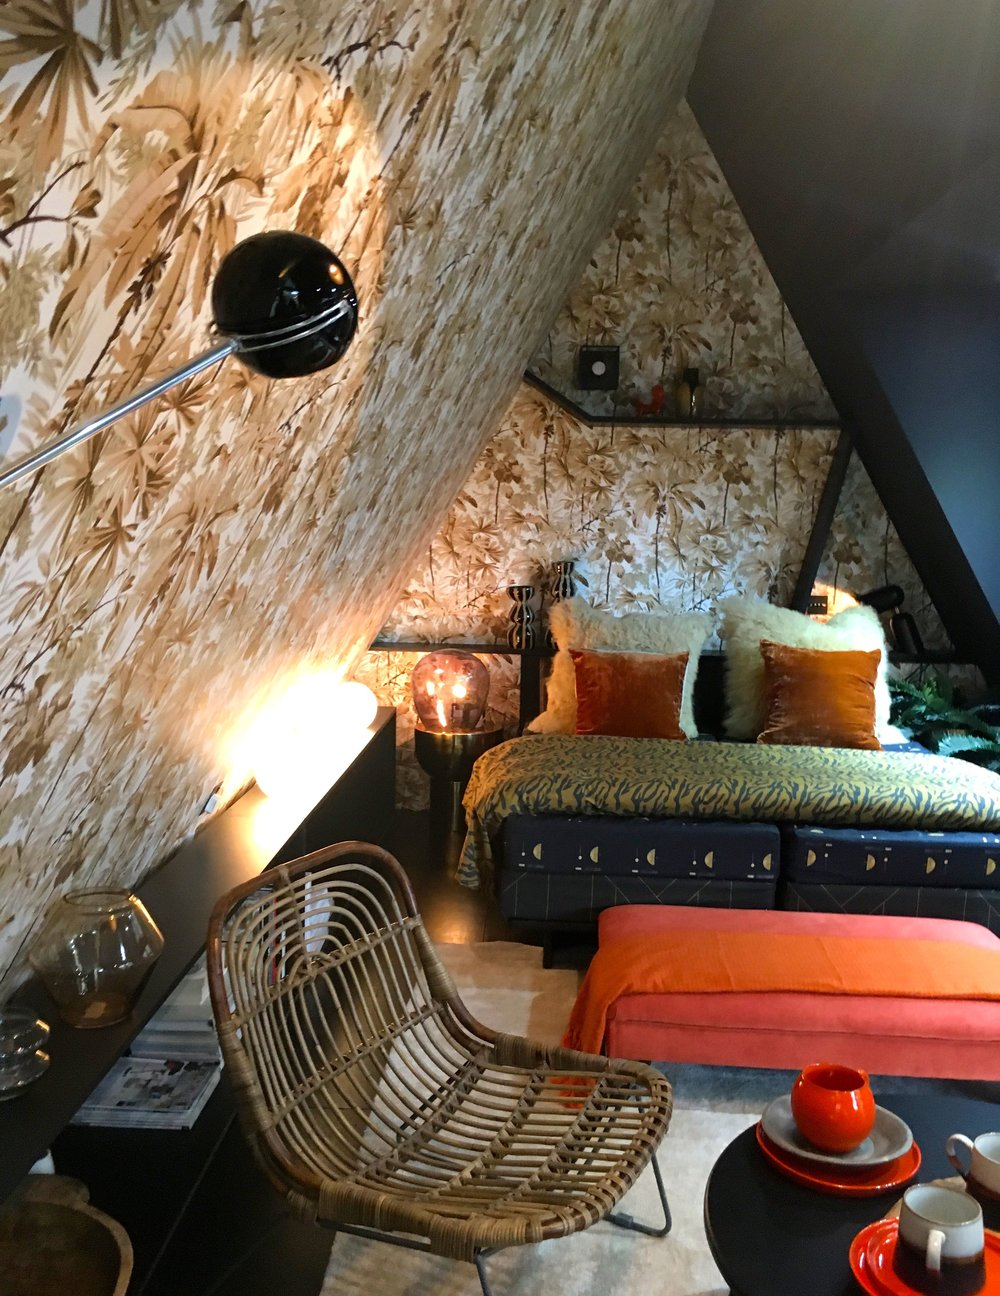 Like toblerone this triangle shaped woodland guest room was a hit